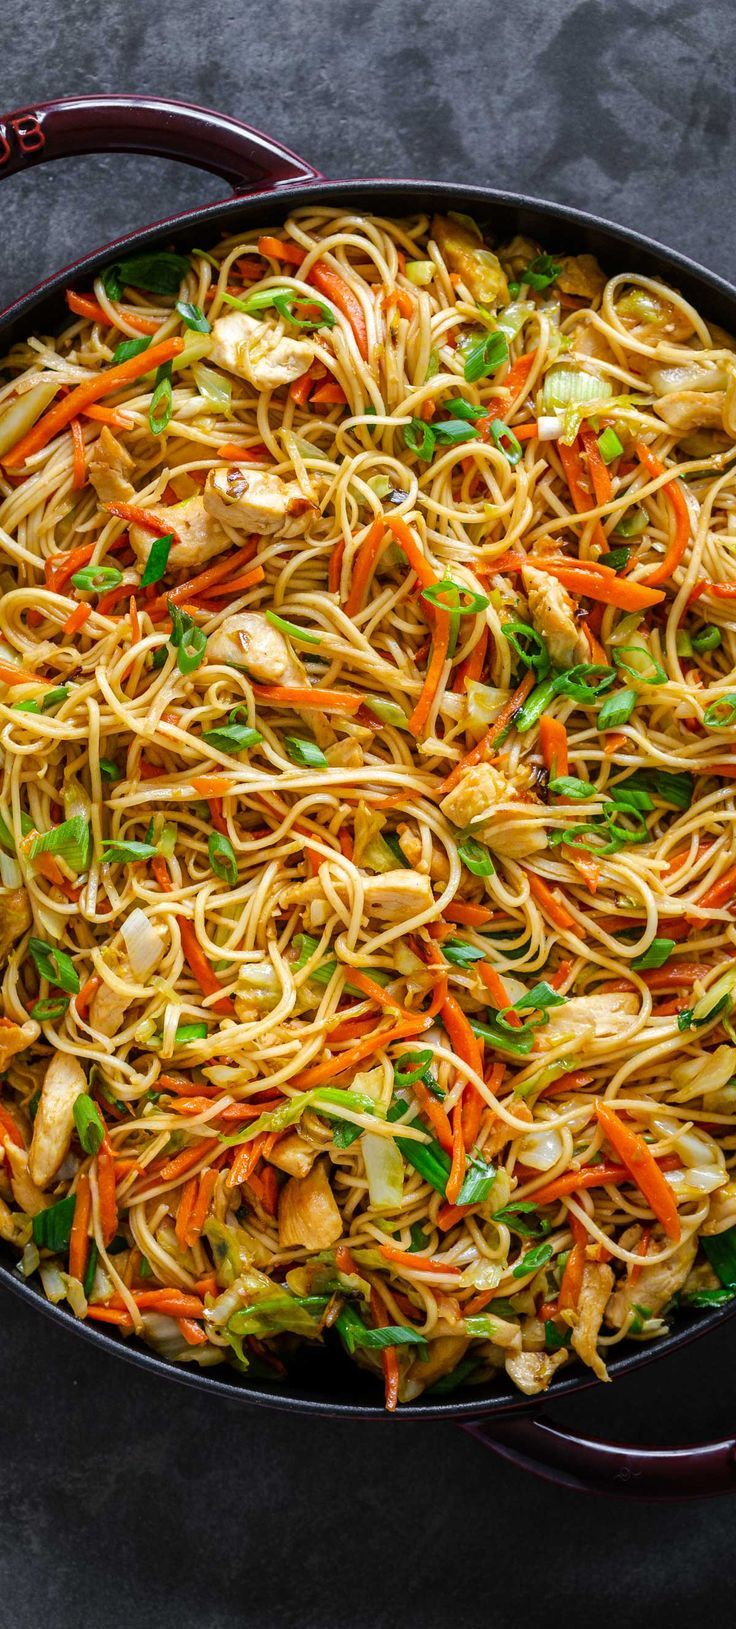 Chicken Chow Mein With Best Chow Mein Sauce Natashaskitchen Com Homemade Chow Mein Chow Mein Recipe Noodle Recipes Easy